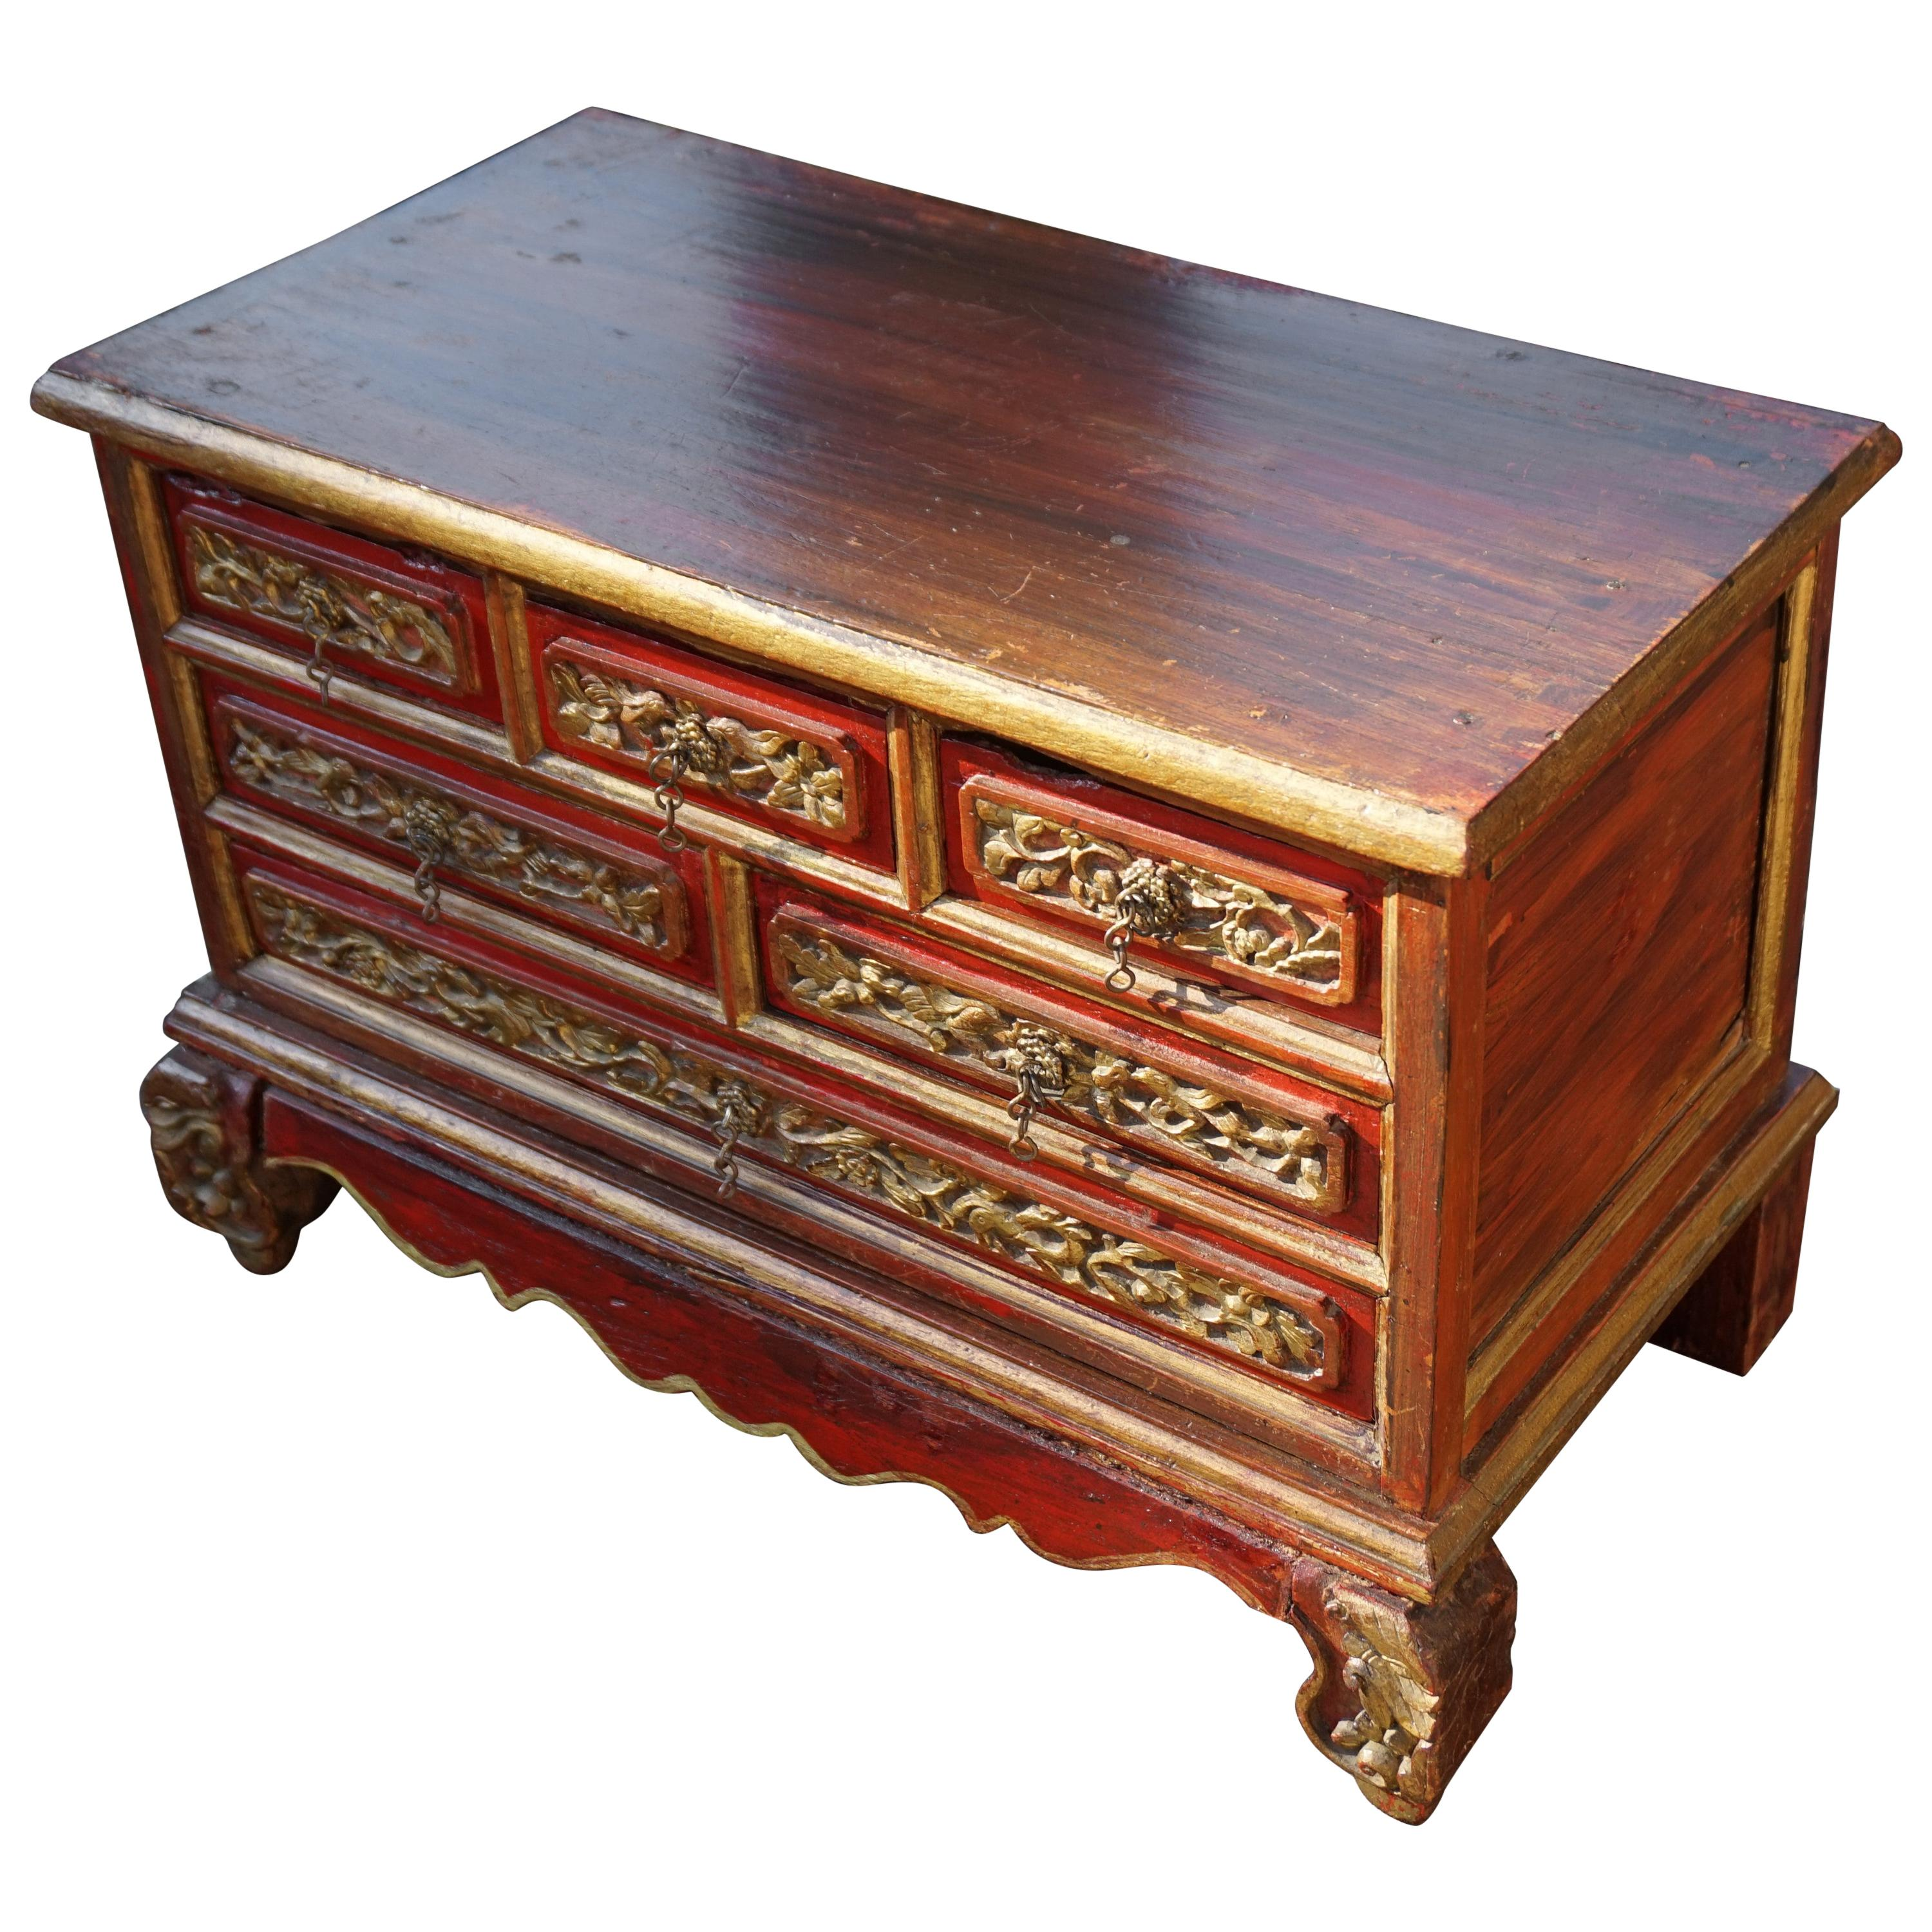 Chinese Jewelry Box with Drawers with Hand Carved Bird and Dragon Sculptures